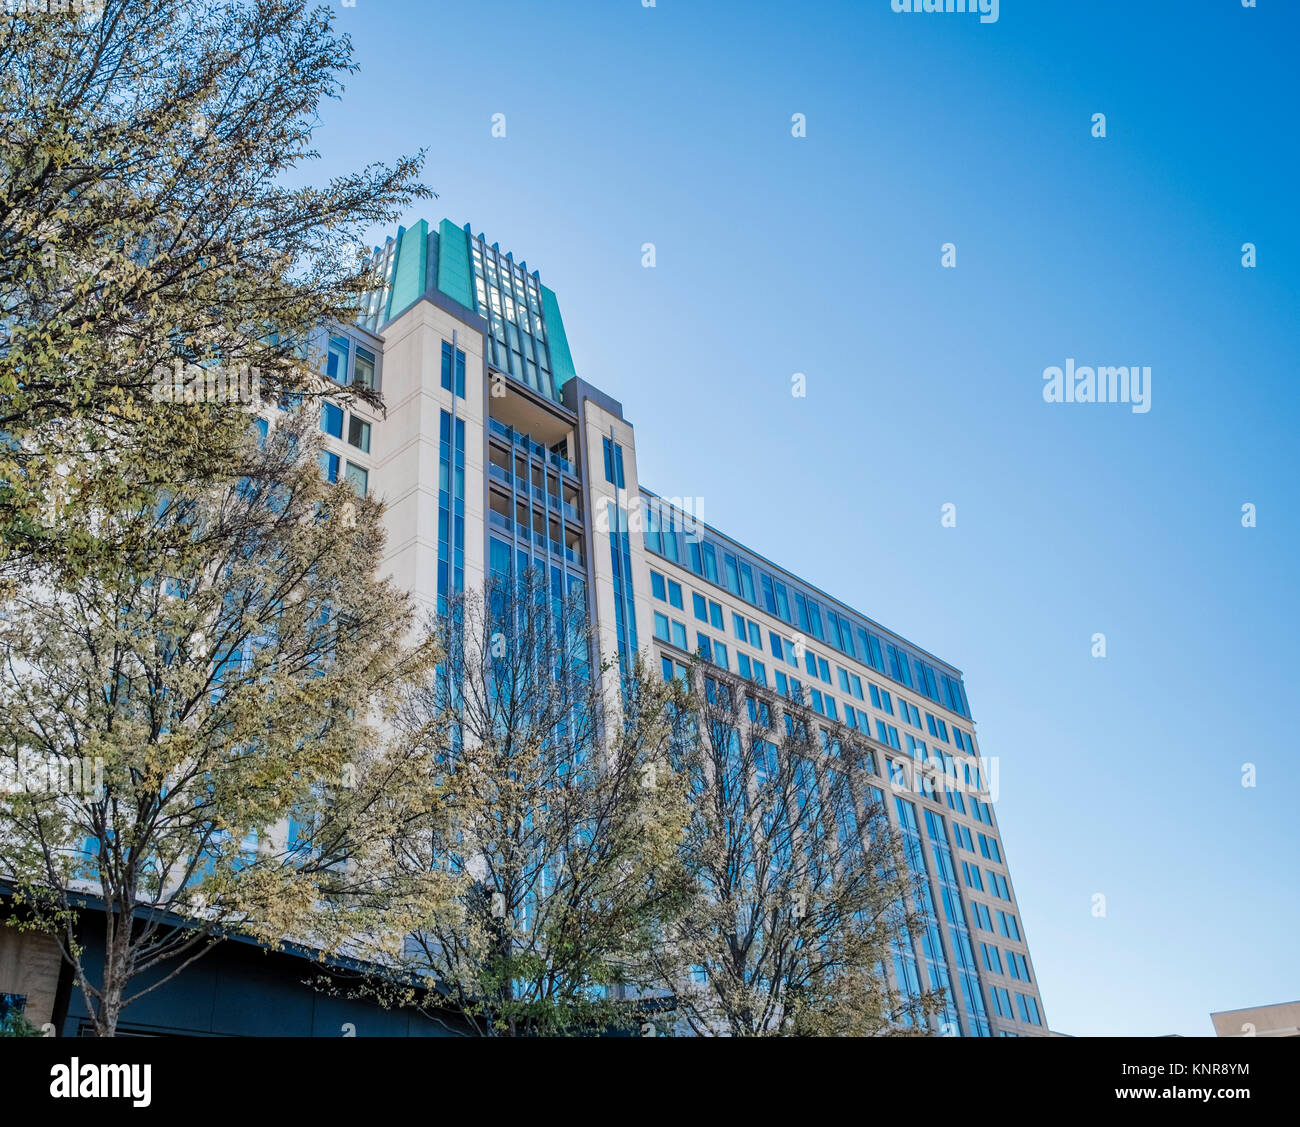 Renaissance Hotel exterior low angle view in urban downtown Montgomery Alabama, USA.  Example of a high-rise city - Stock Image